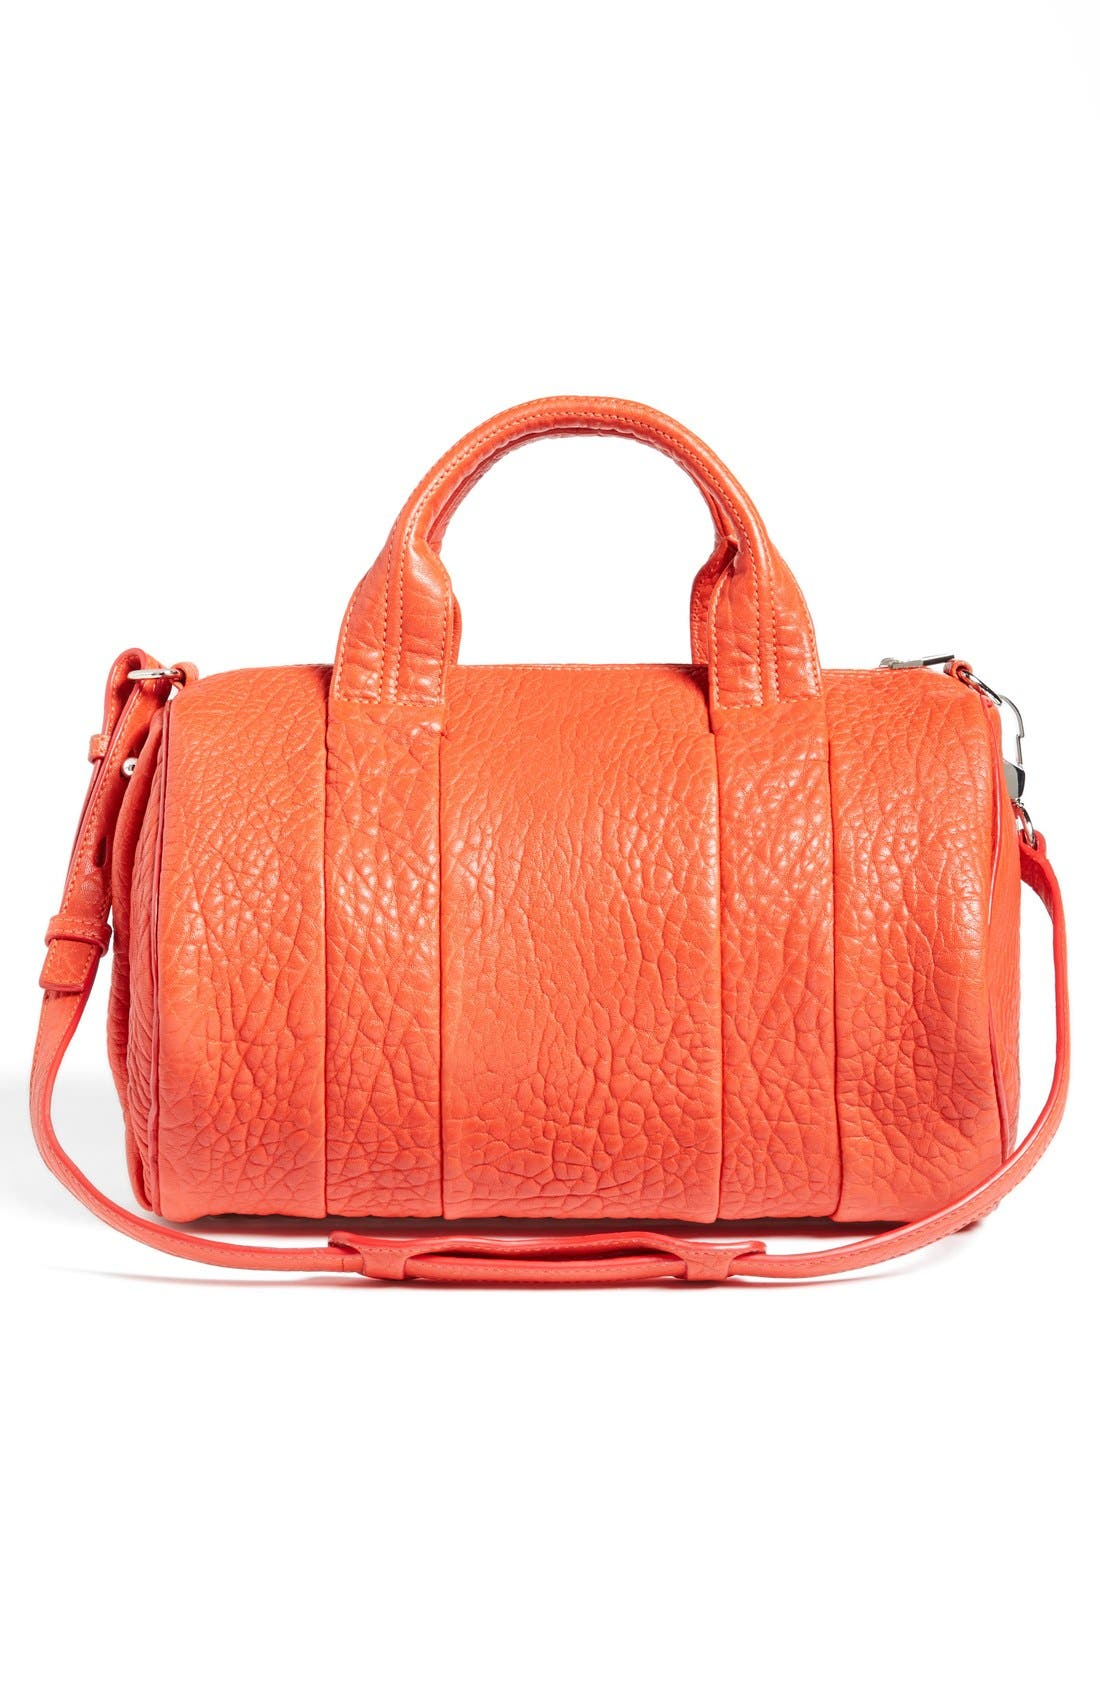 Alternate Image 3  - Alexander Wang 'Rocco - Dumbo Nickel' Lambskin Leather Satchel